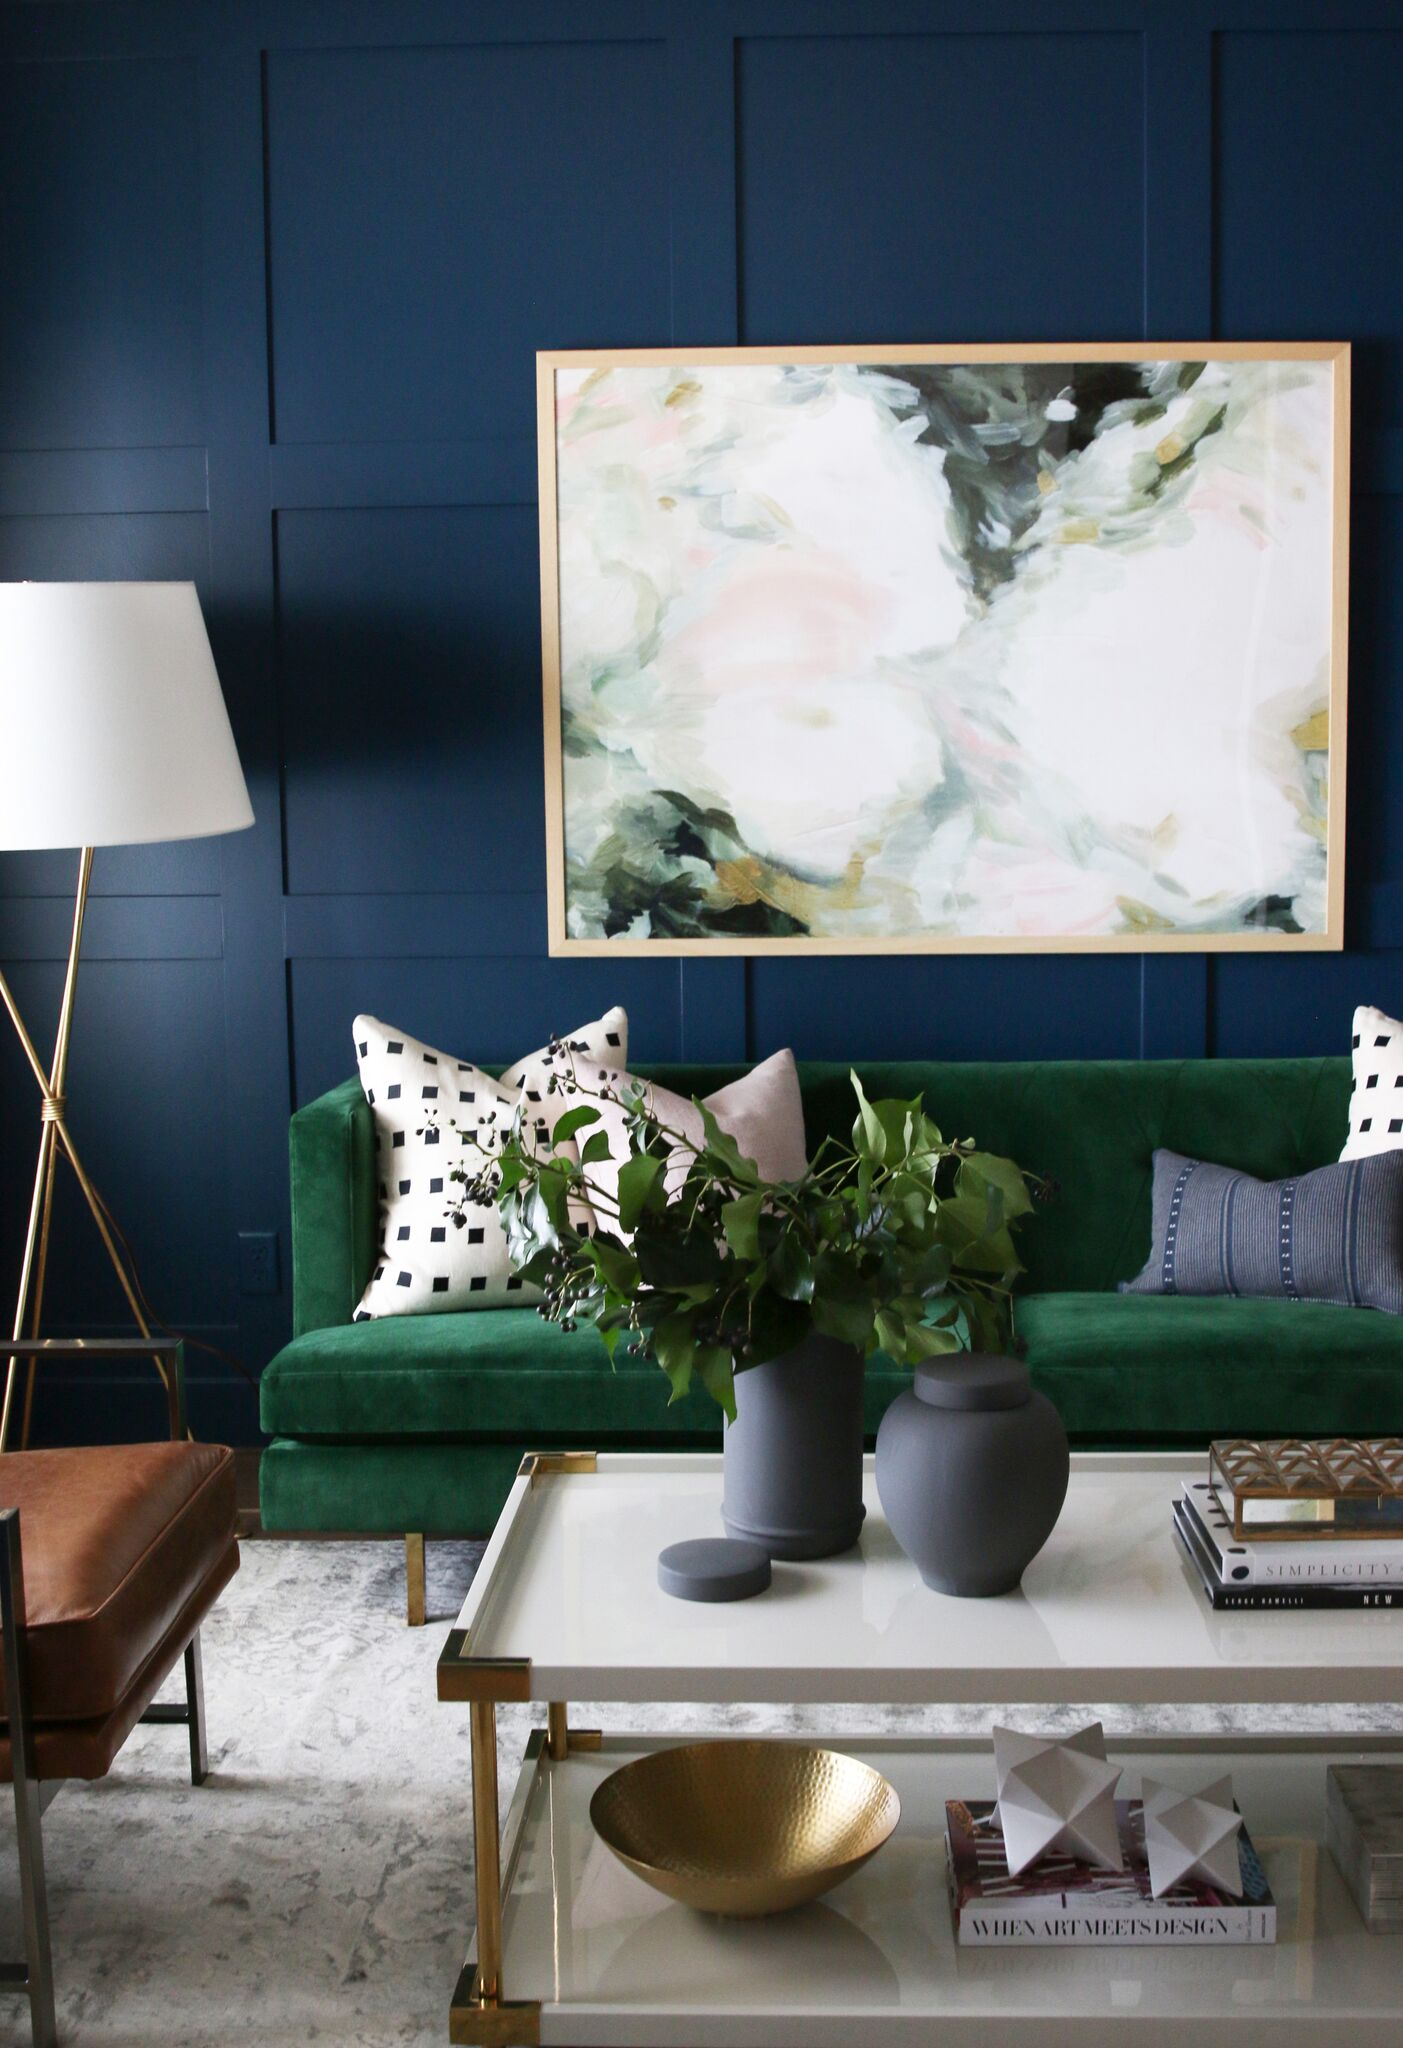 White coffee table in front of green couch